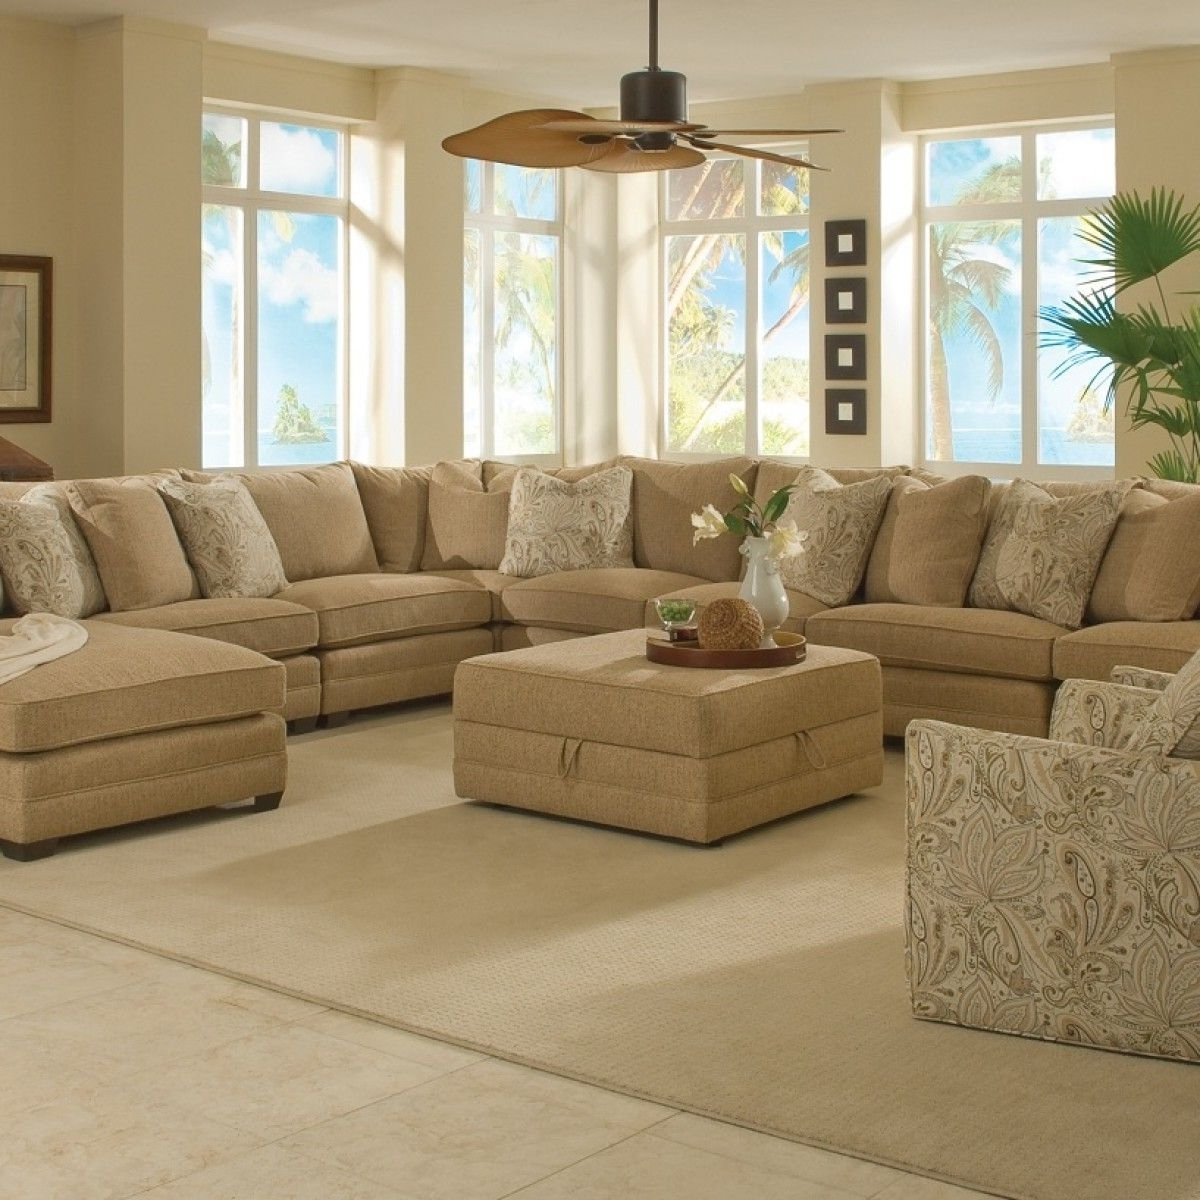 Large Sectionals With Chaise Intended For Preferred Magnificent Large Sectional Sofas (View 5 of 15)